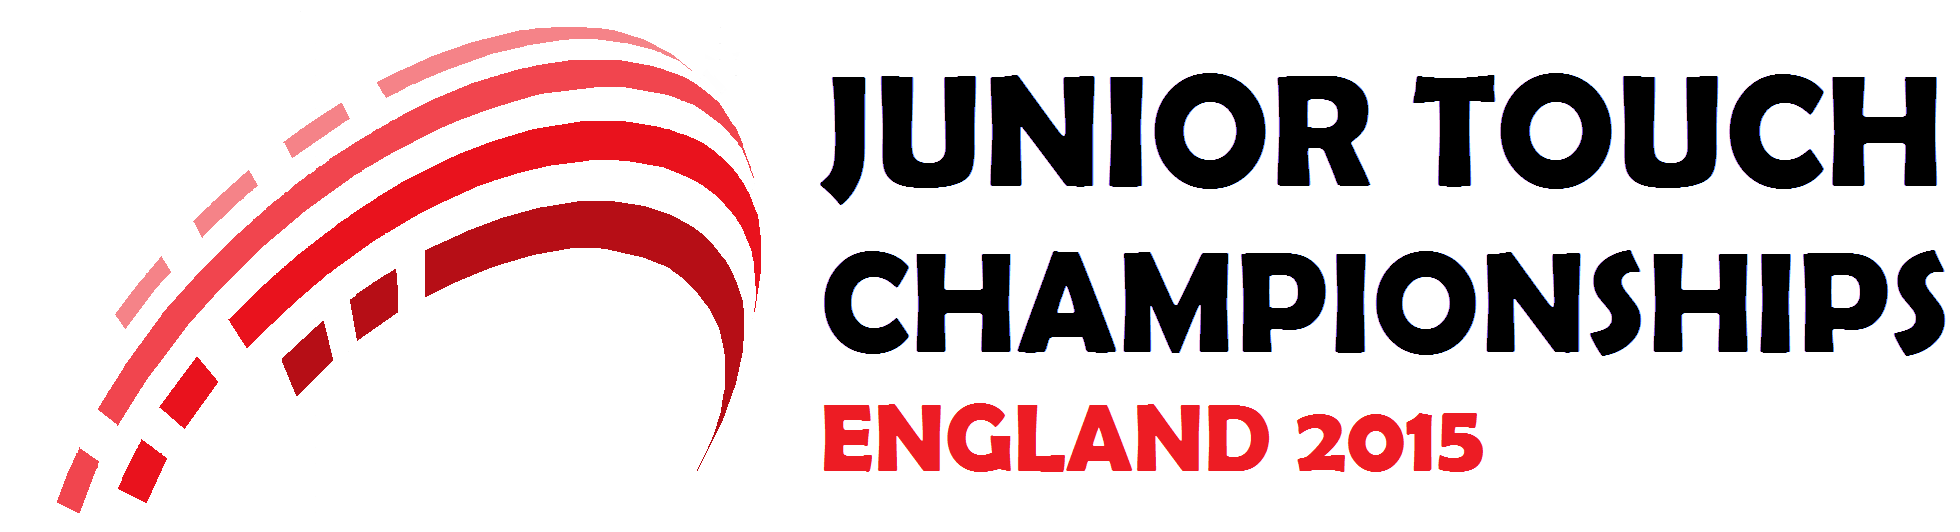 England to host JTC2015